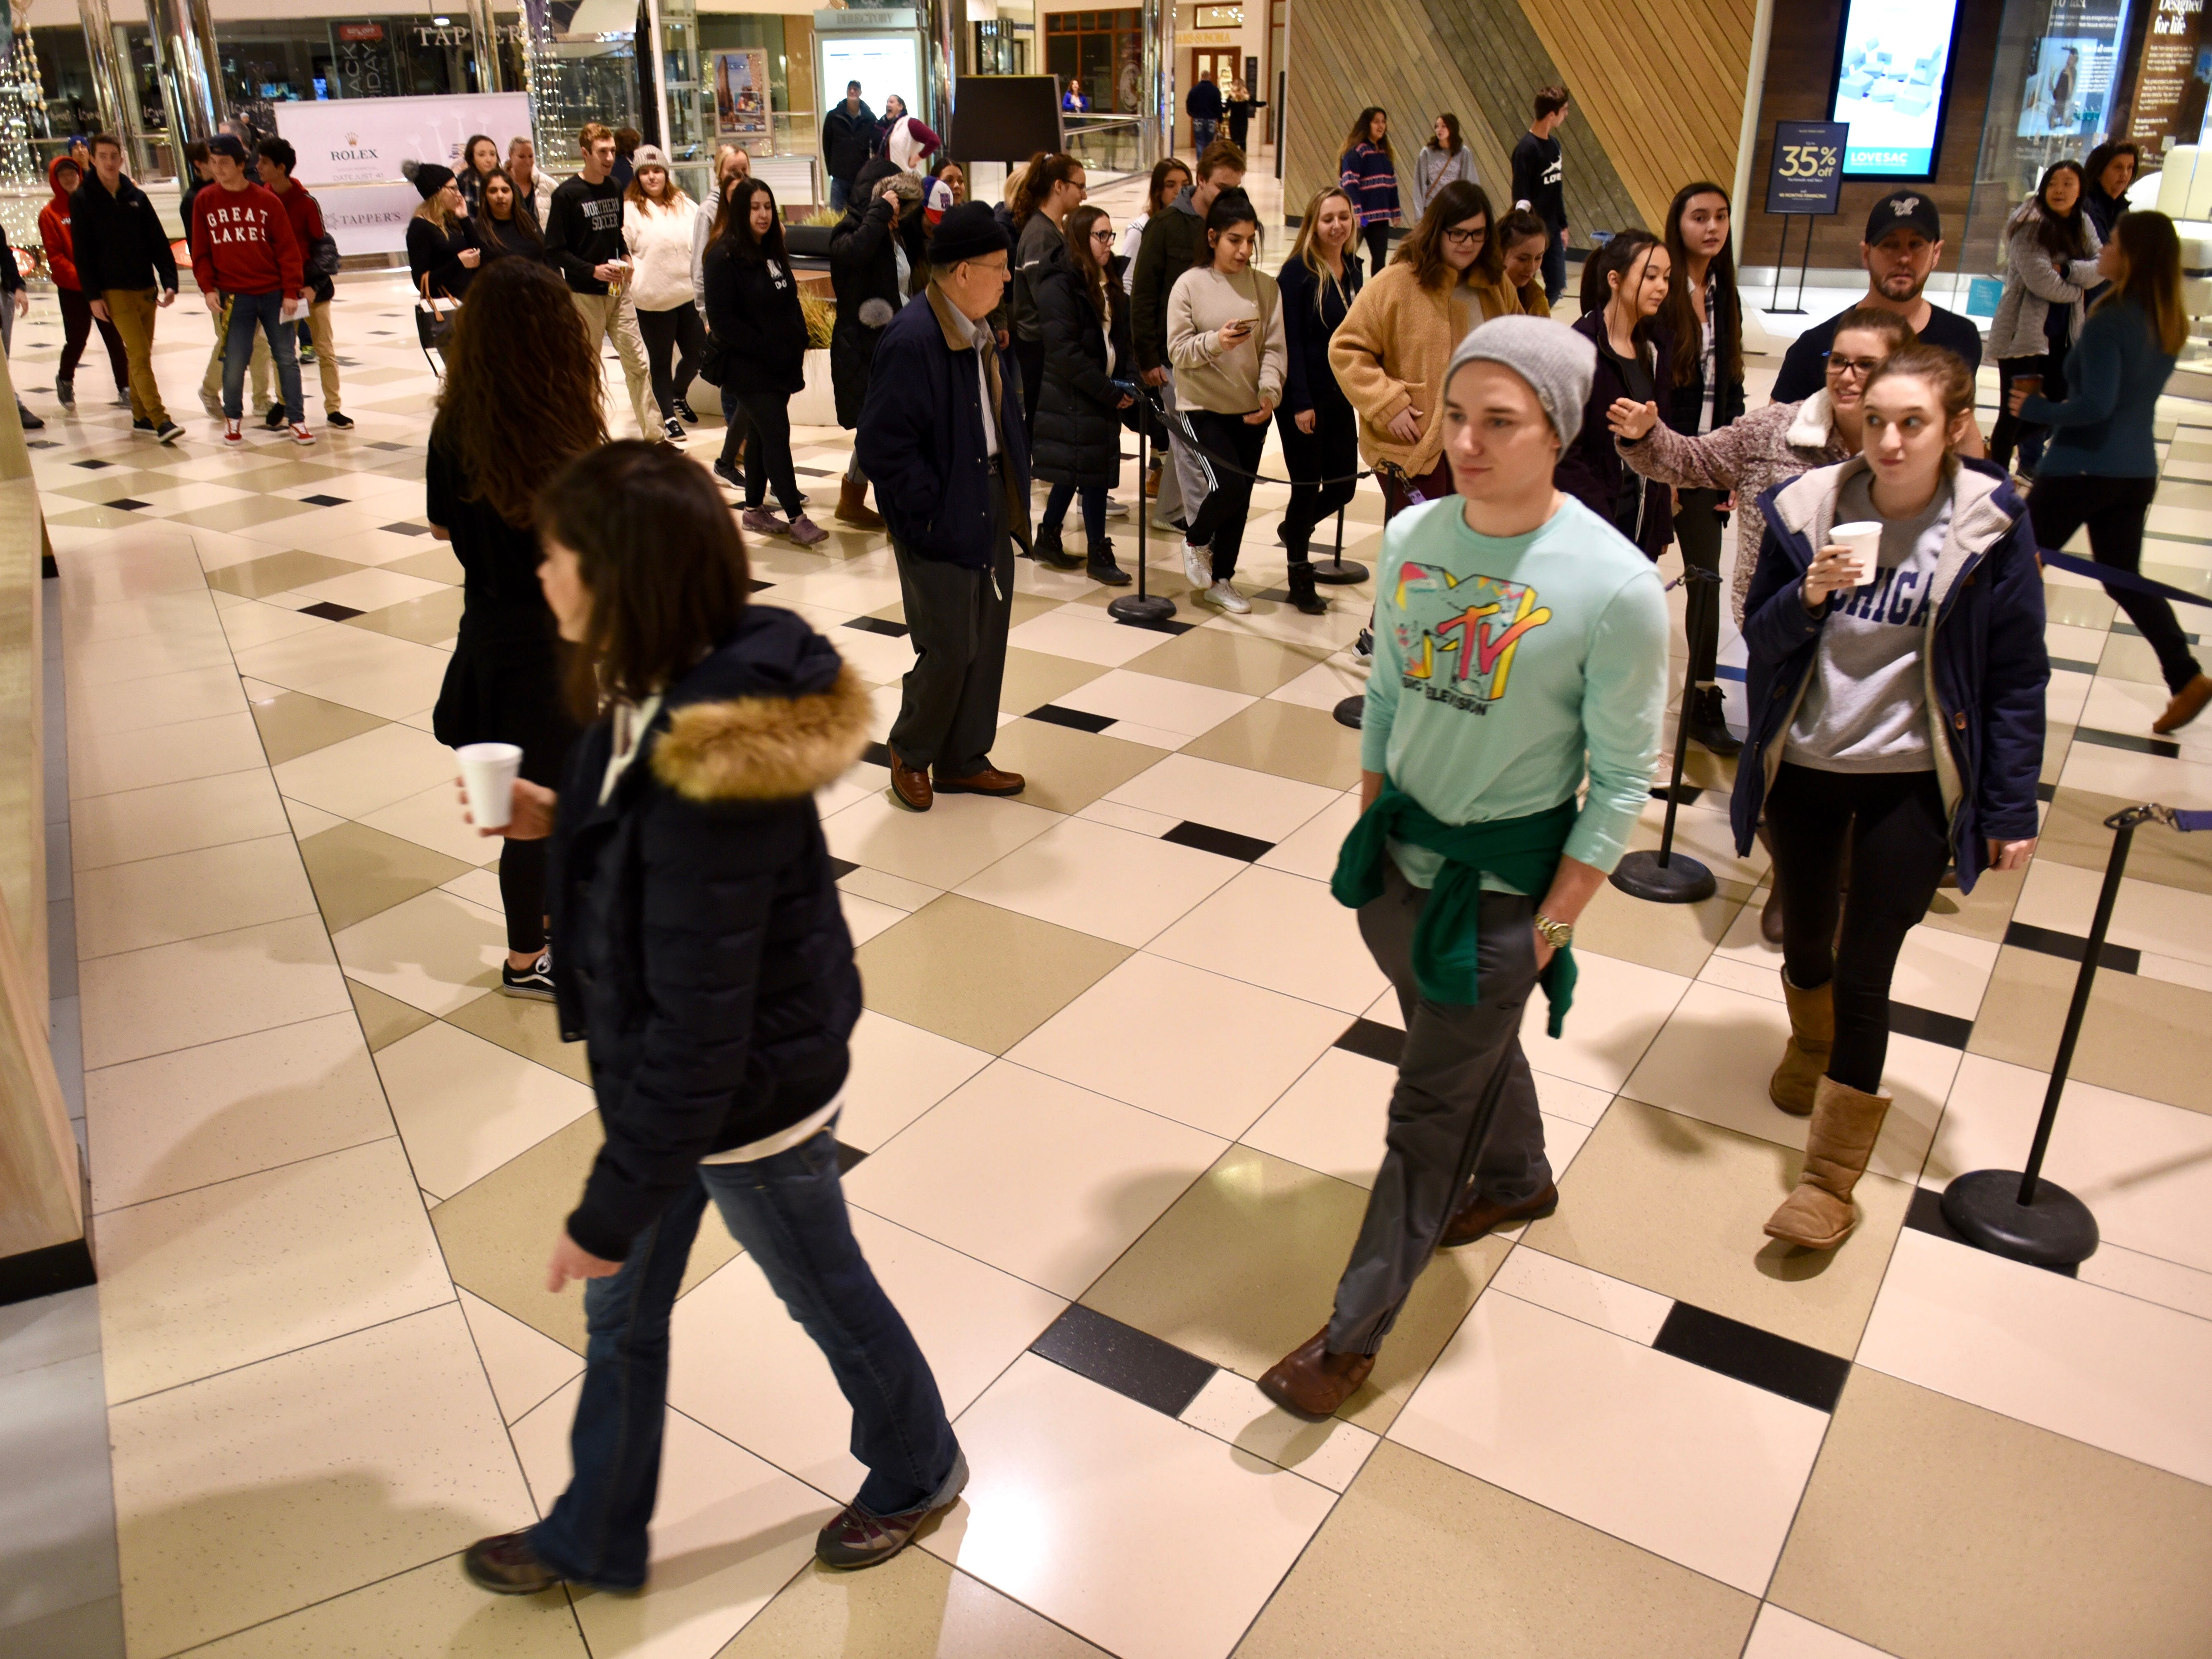 A line of shoppers, some with morning beverages in hand, enters the Lululemon store as doors open at Twelve Oaks Mall in Novi on Friday.